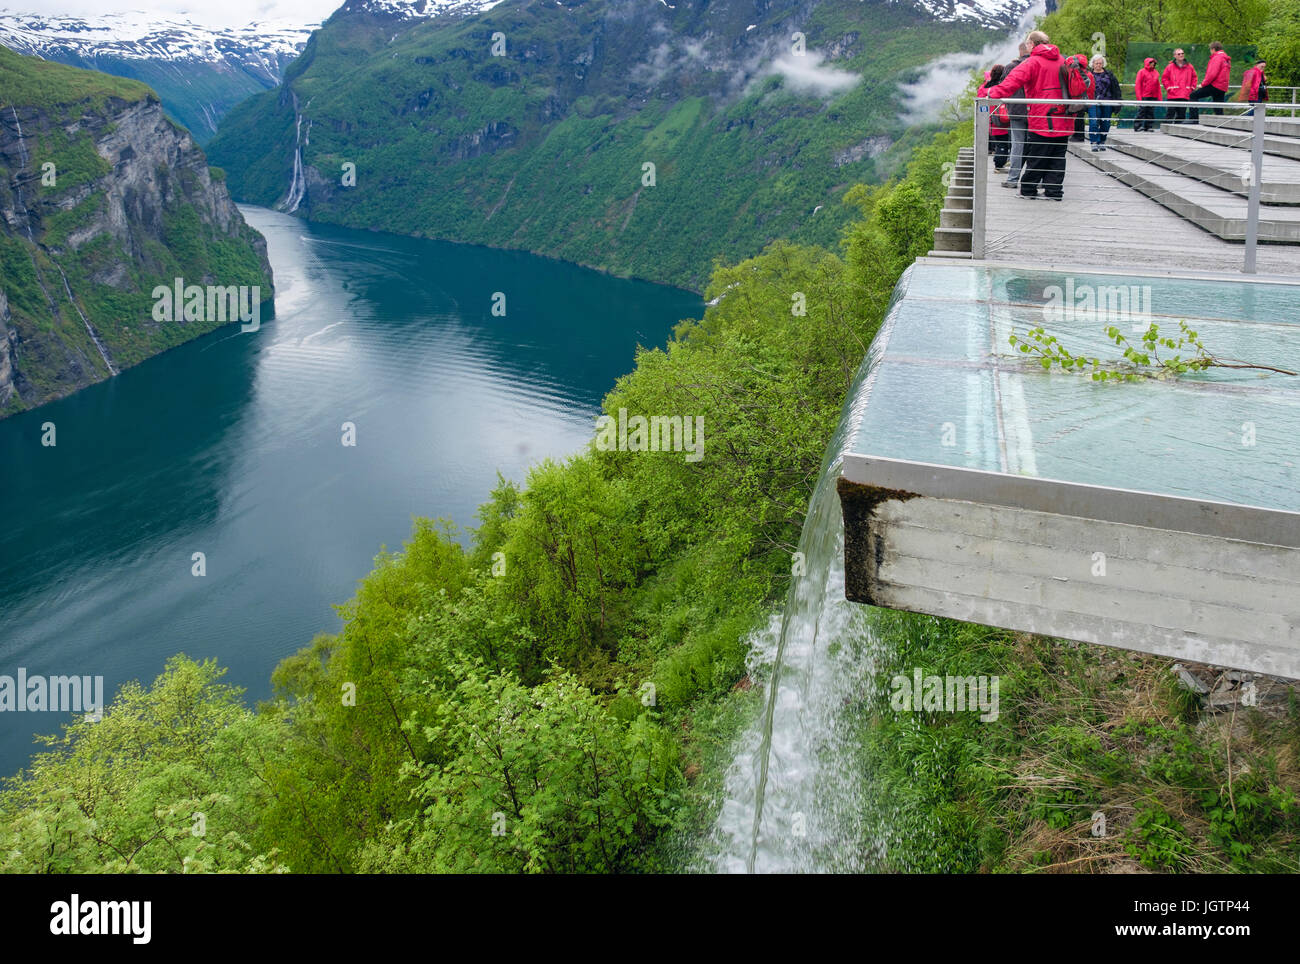 Artificial waterfall with tourists looking at view from high Eagles Road viewpoint platform overlooking Geirangerfjorden - Stock Image